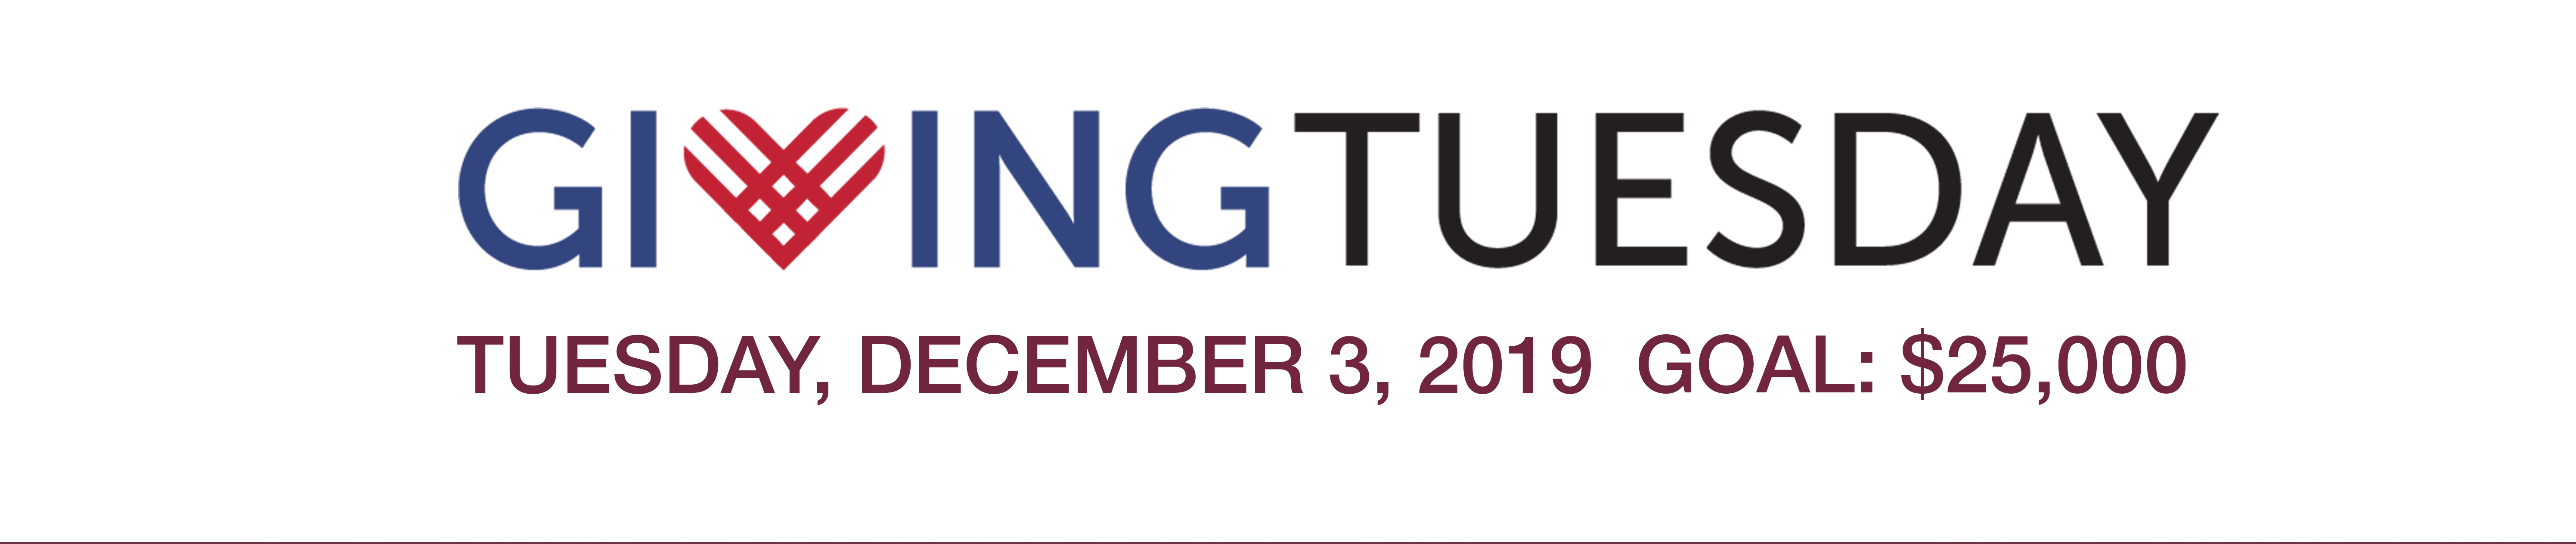 Giving Tuesday Page Banner